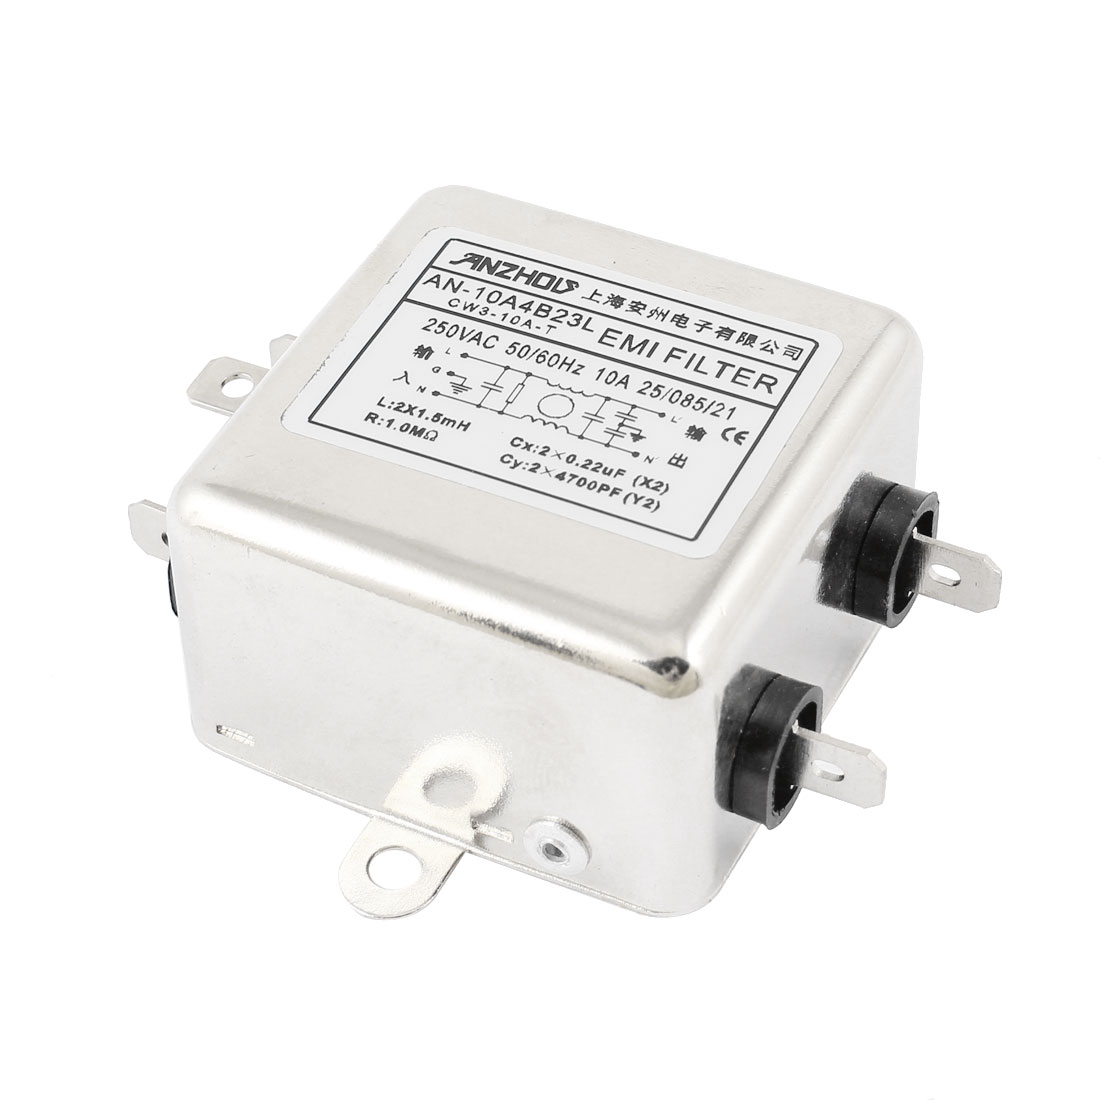 AN-10A4B23L AC 250V 10A Single Phase Noise Suppressor Power Line EMI Filter